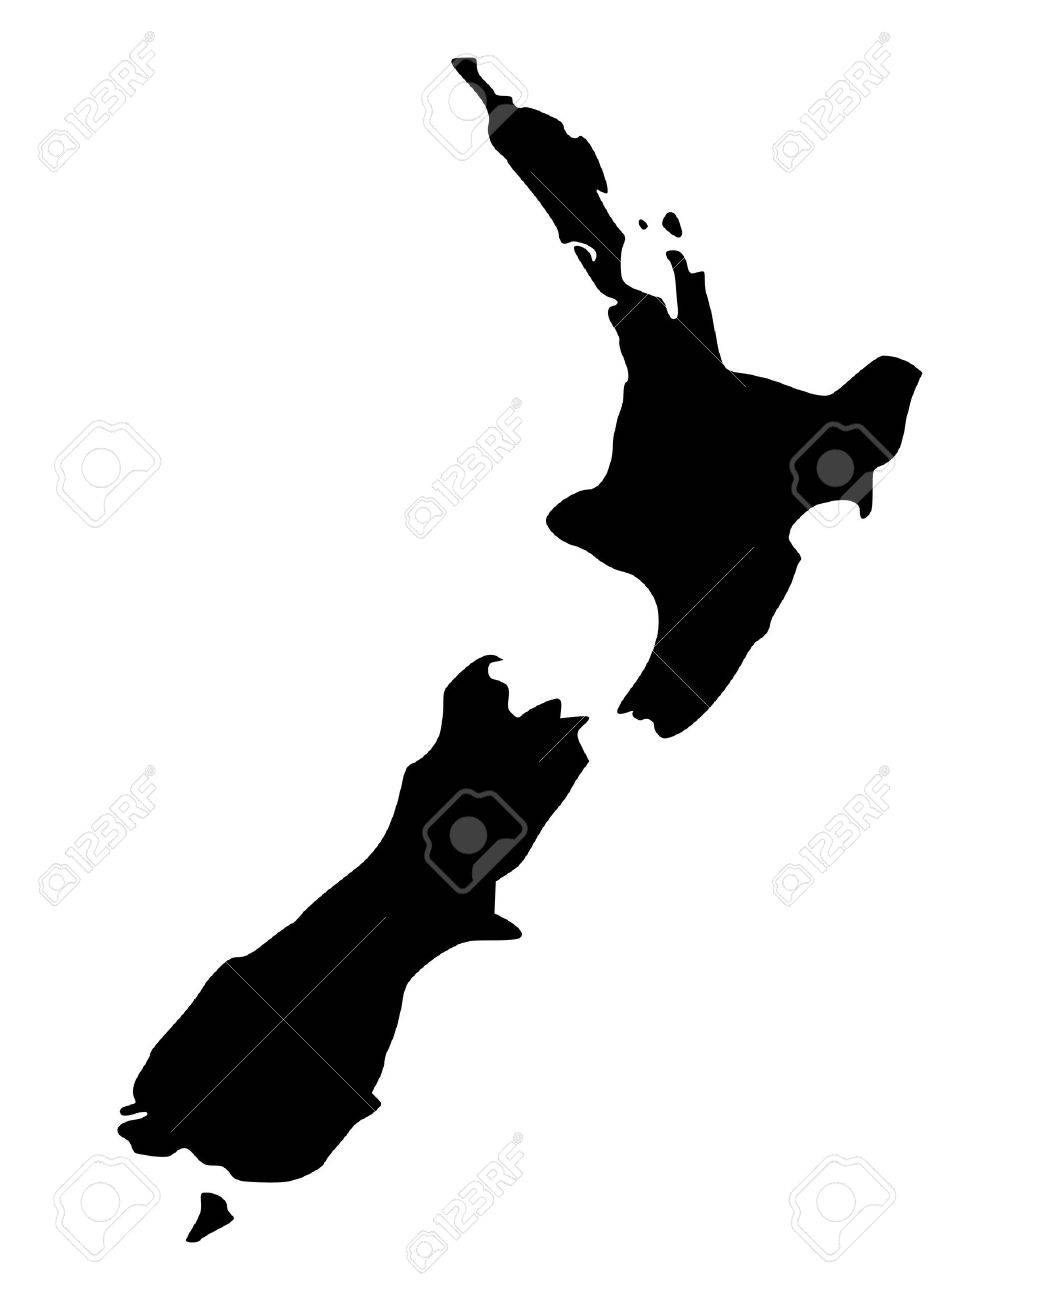 Map of New Zealand - 14309704